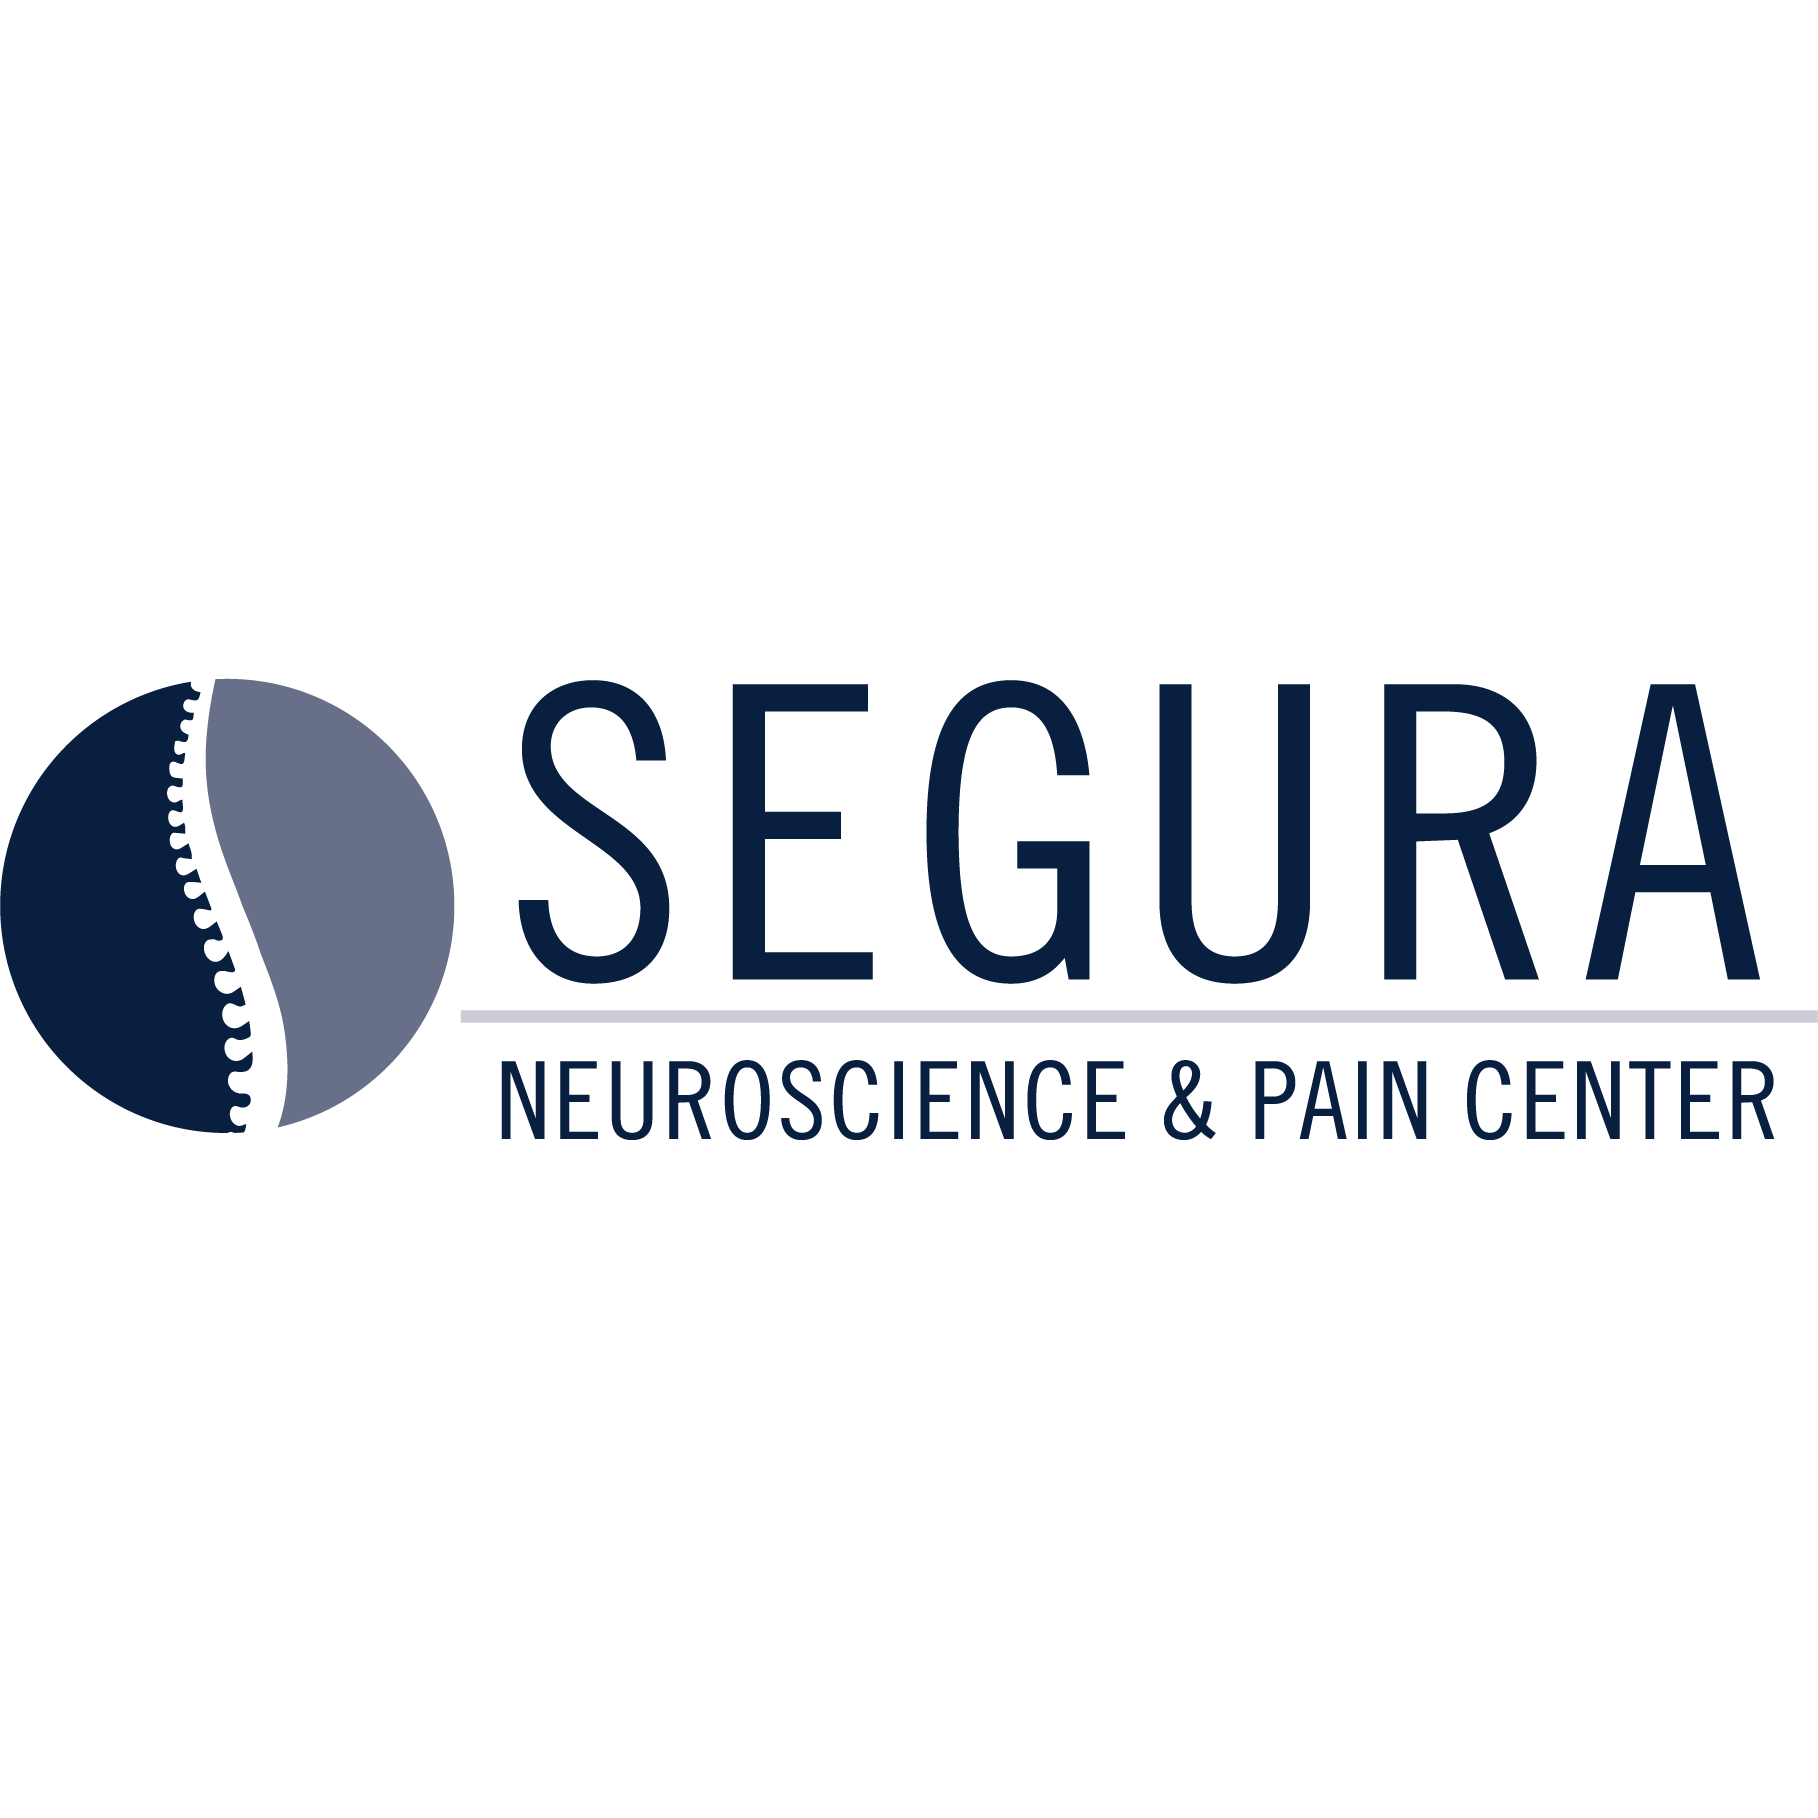 Segura Neuroscience & Pain Center